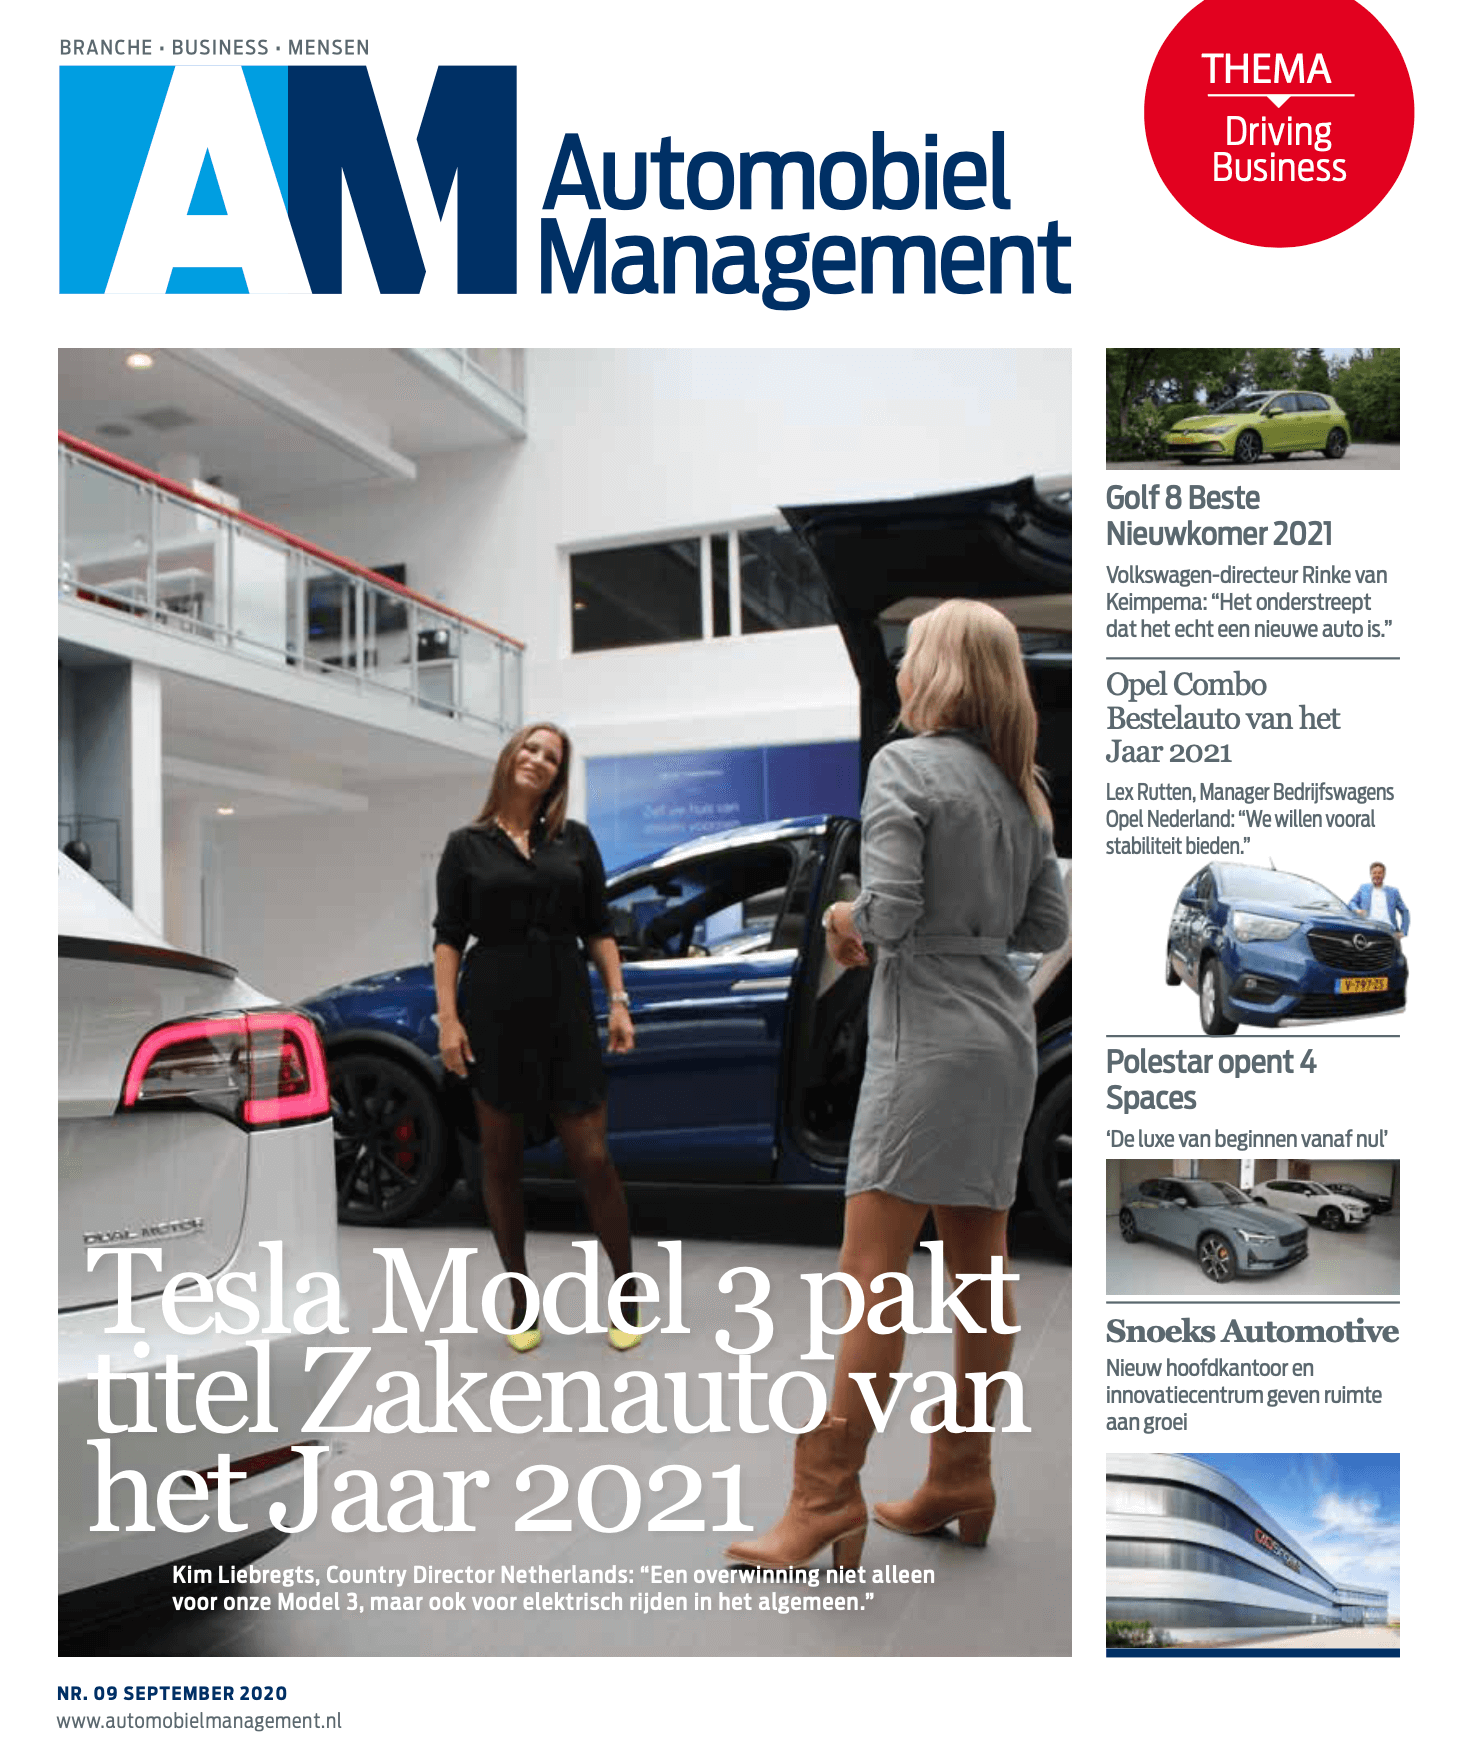 Automobiel Management Thema Driving Business september 2020